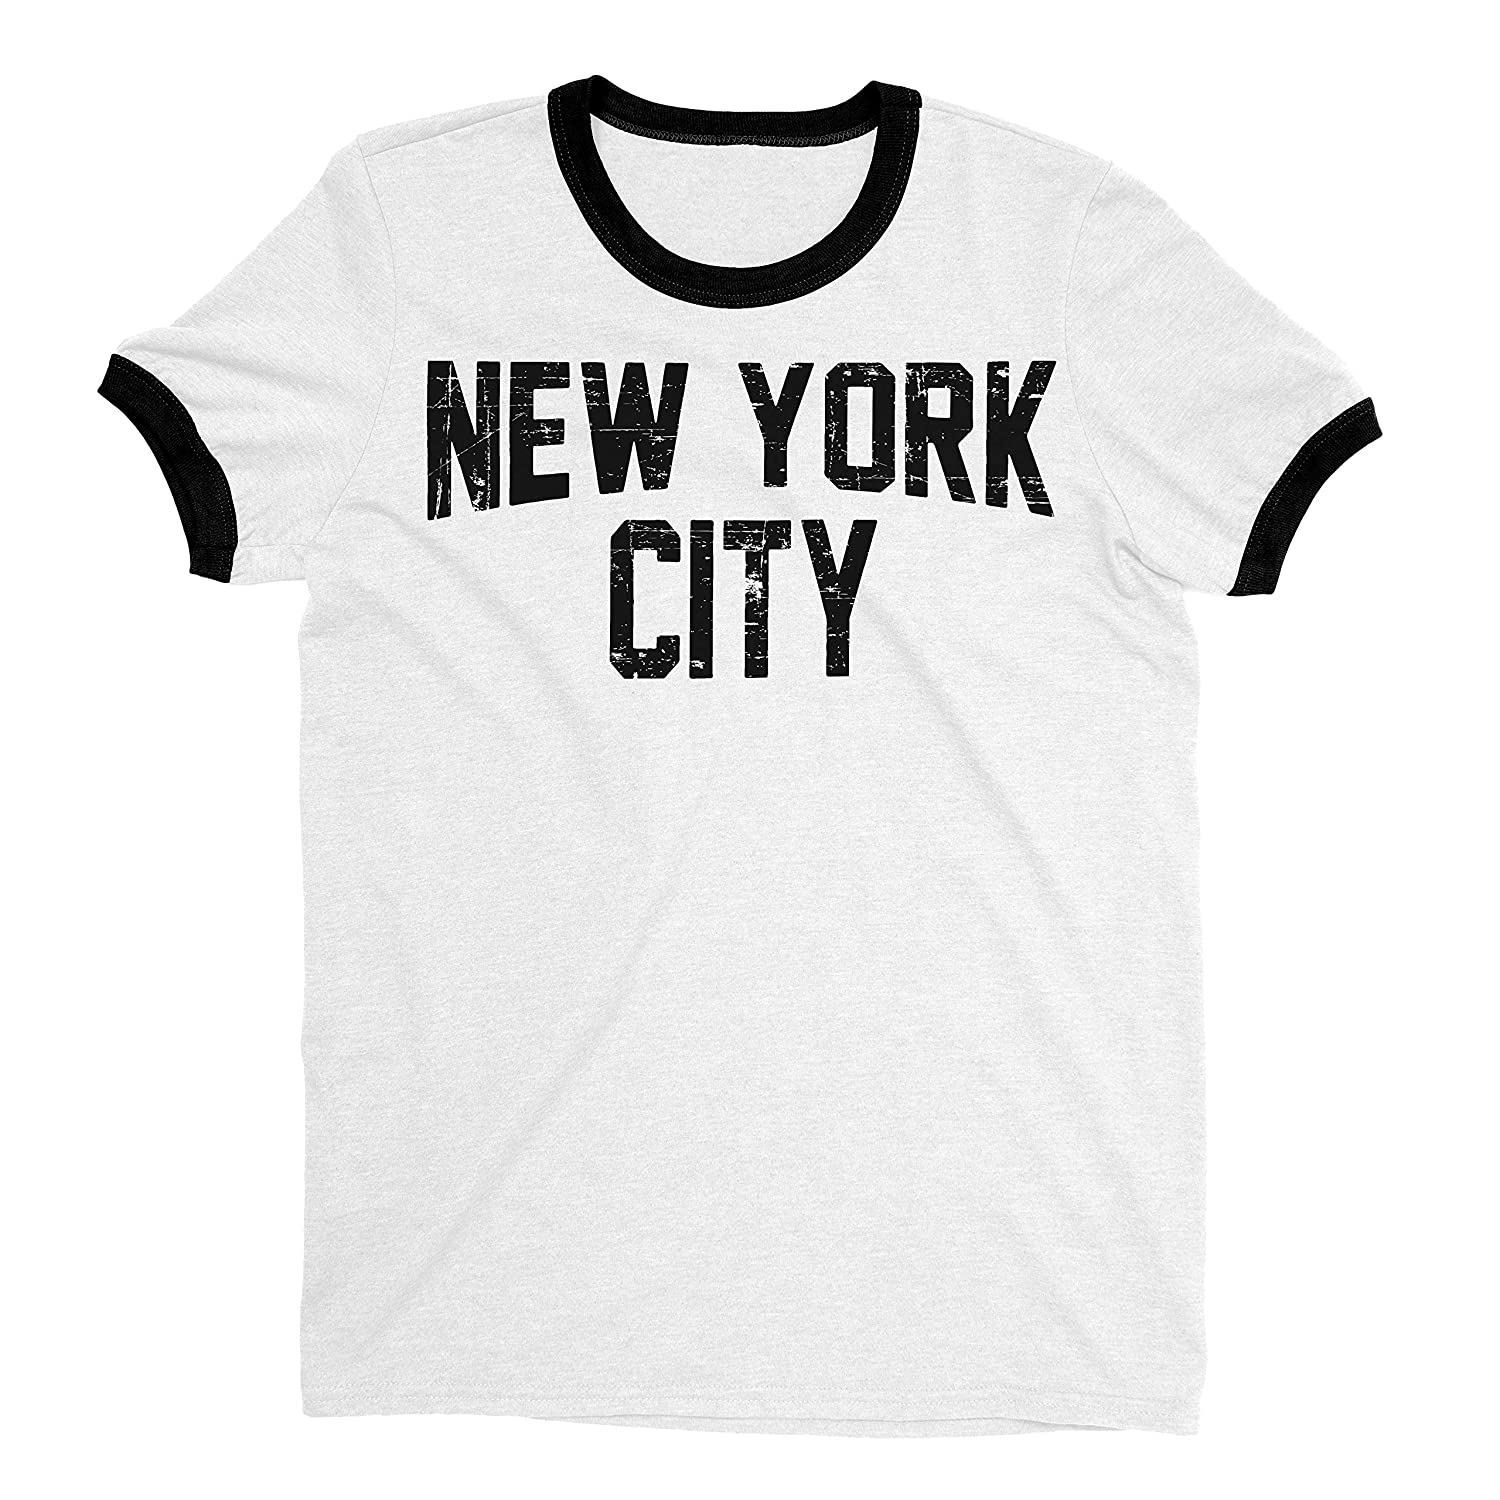 da1a812e9126fe Amazon.com  New York City John Lennon Ringer Tee T-Shirt Retro Style Men s  Shirt  Clothing